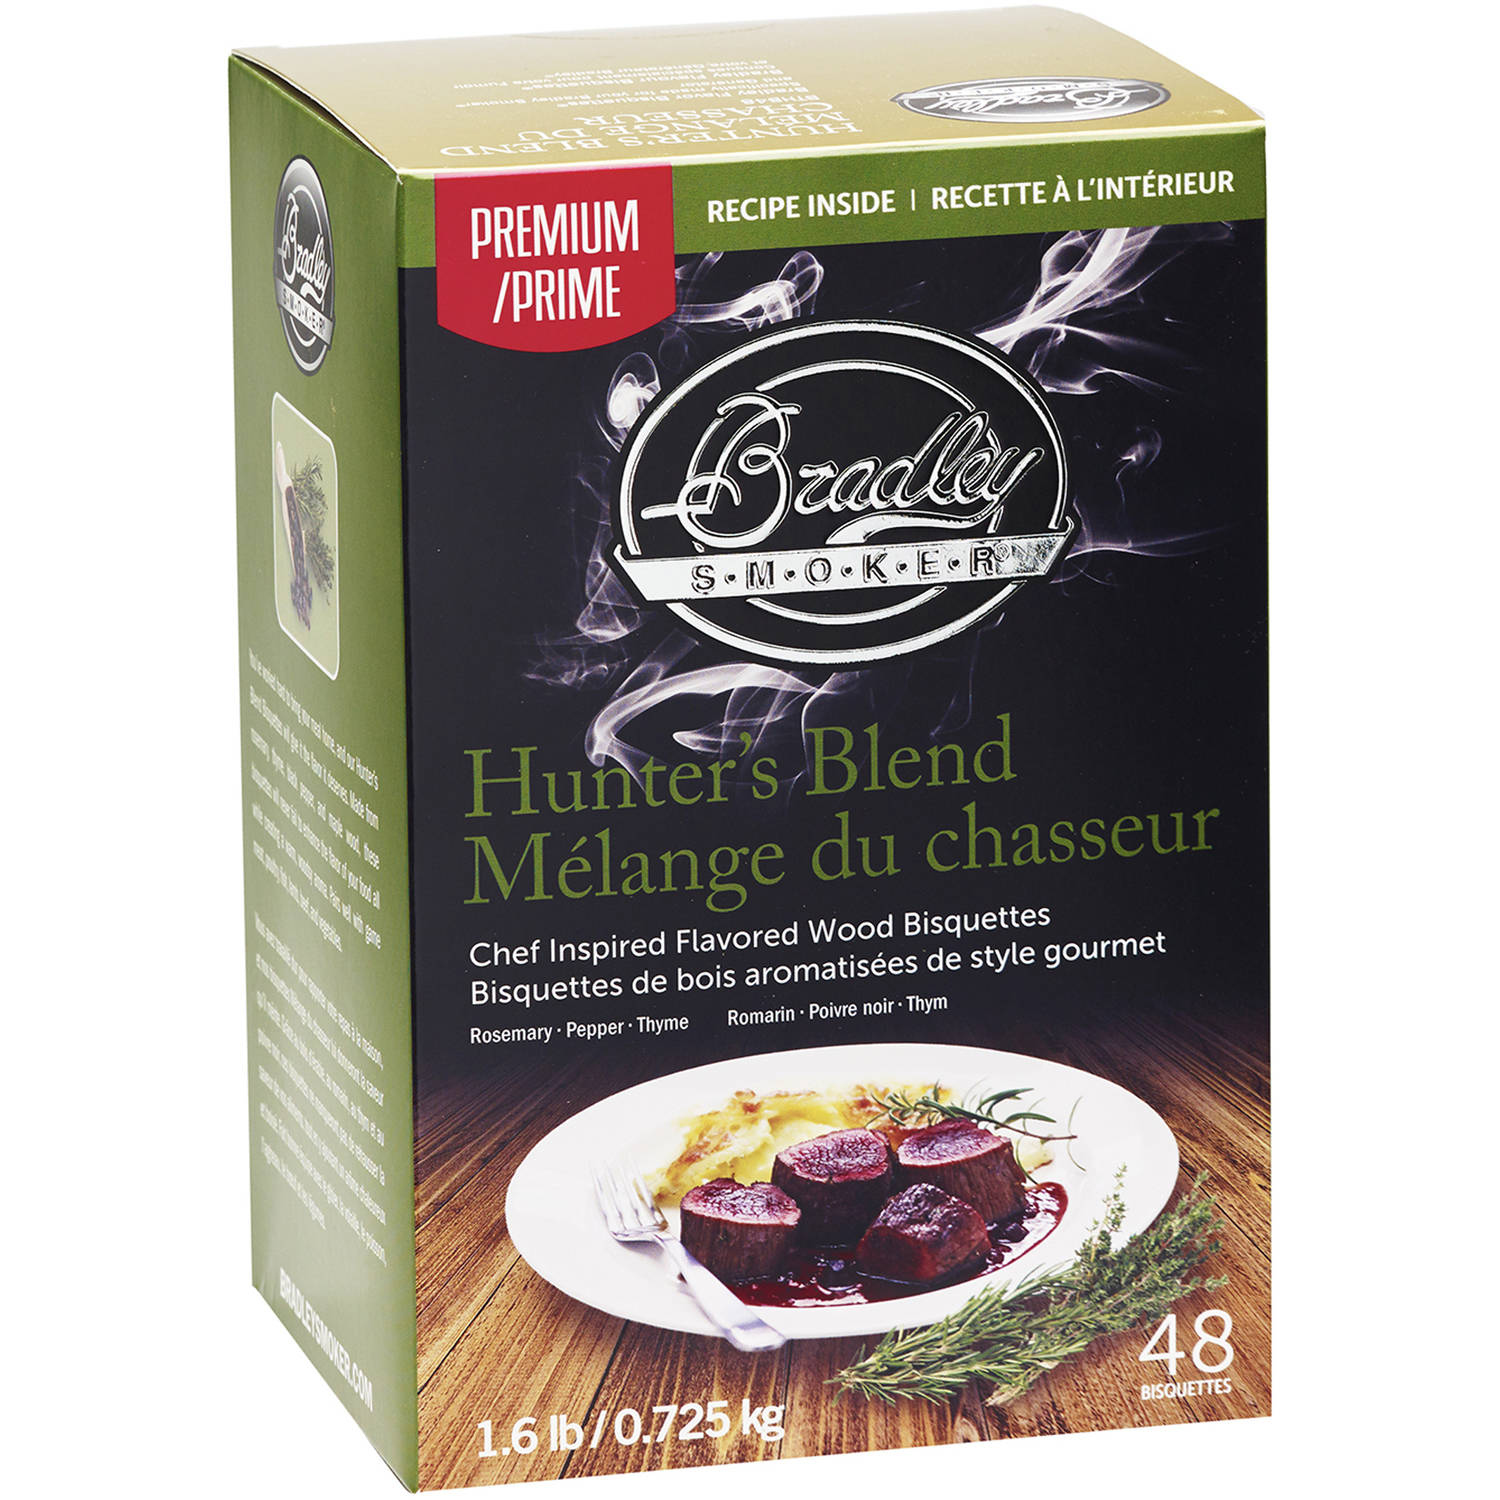 Hunter's Blend Bisquettes, 48-Pack